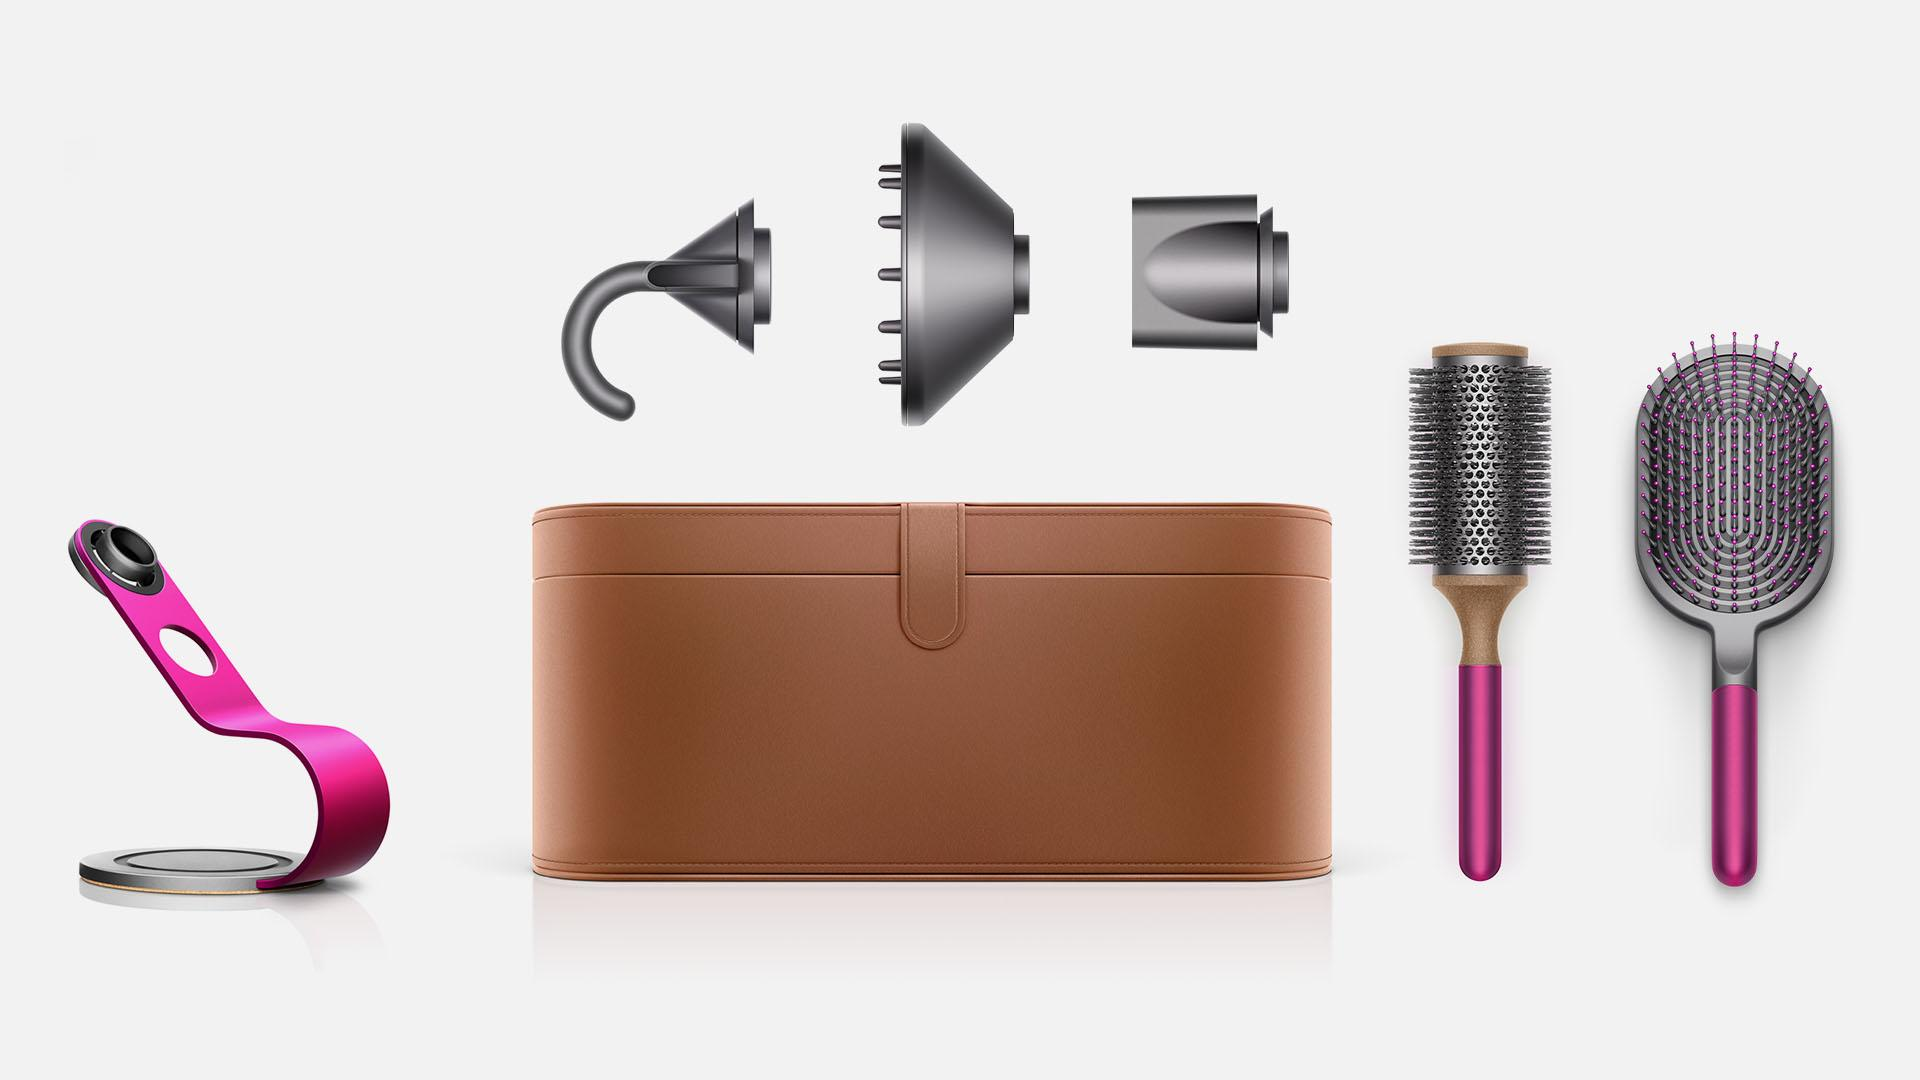 Image showing  Supersonic accessories